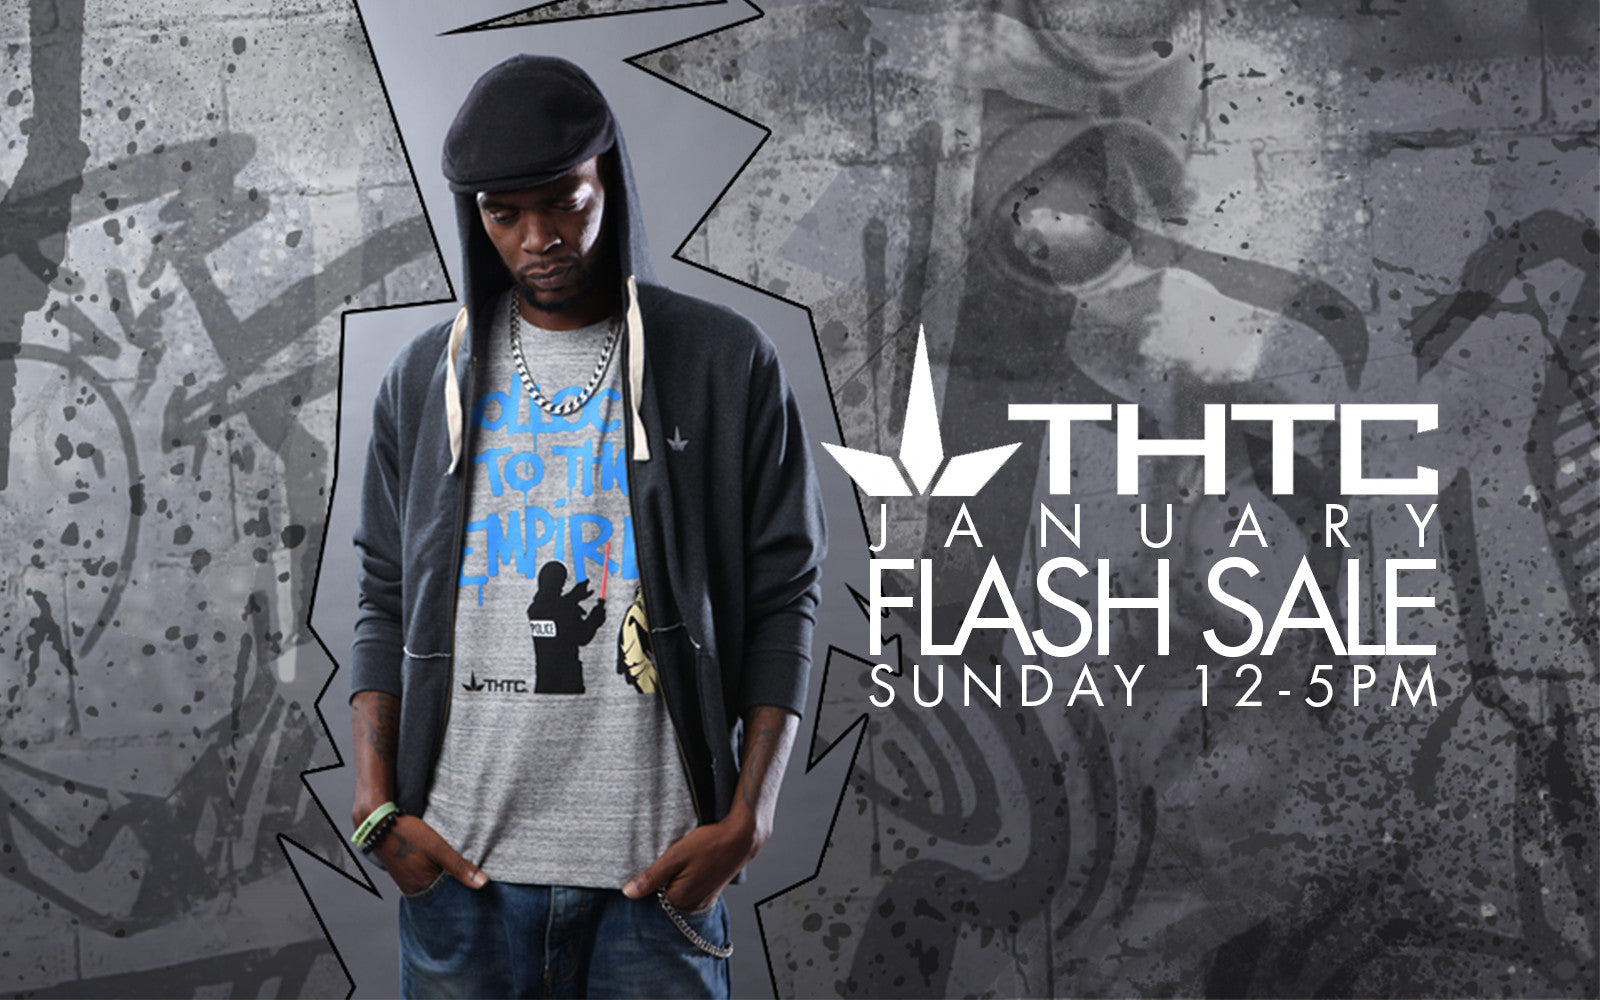 End of January FLASH SALE!